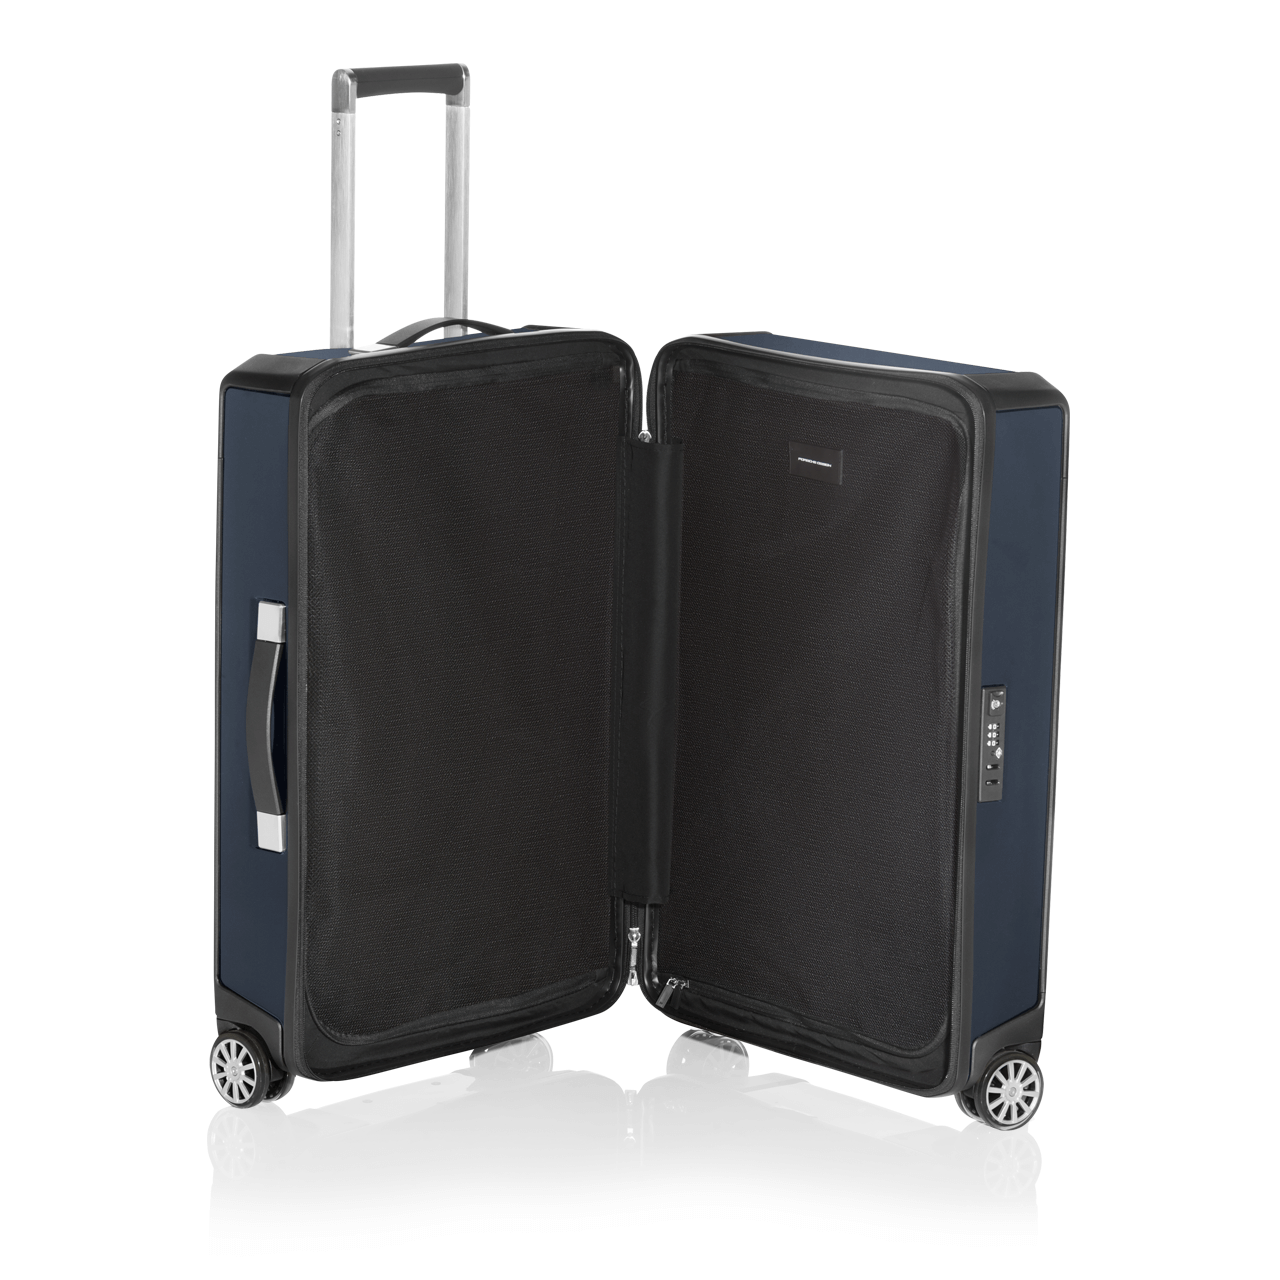 ROADSTER HARDCASE TROLLEY M - фото 4